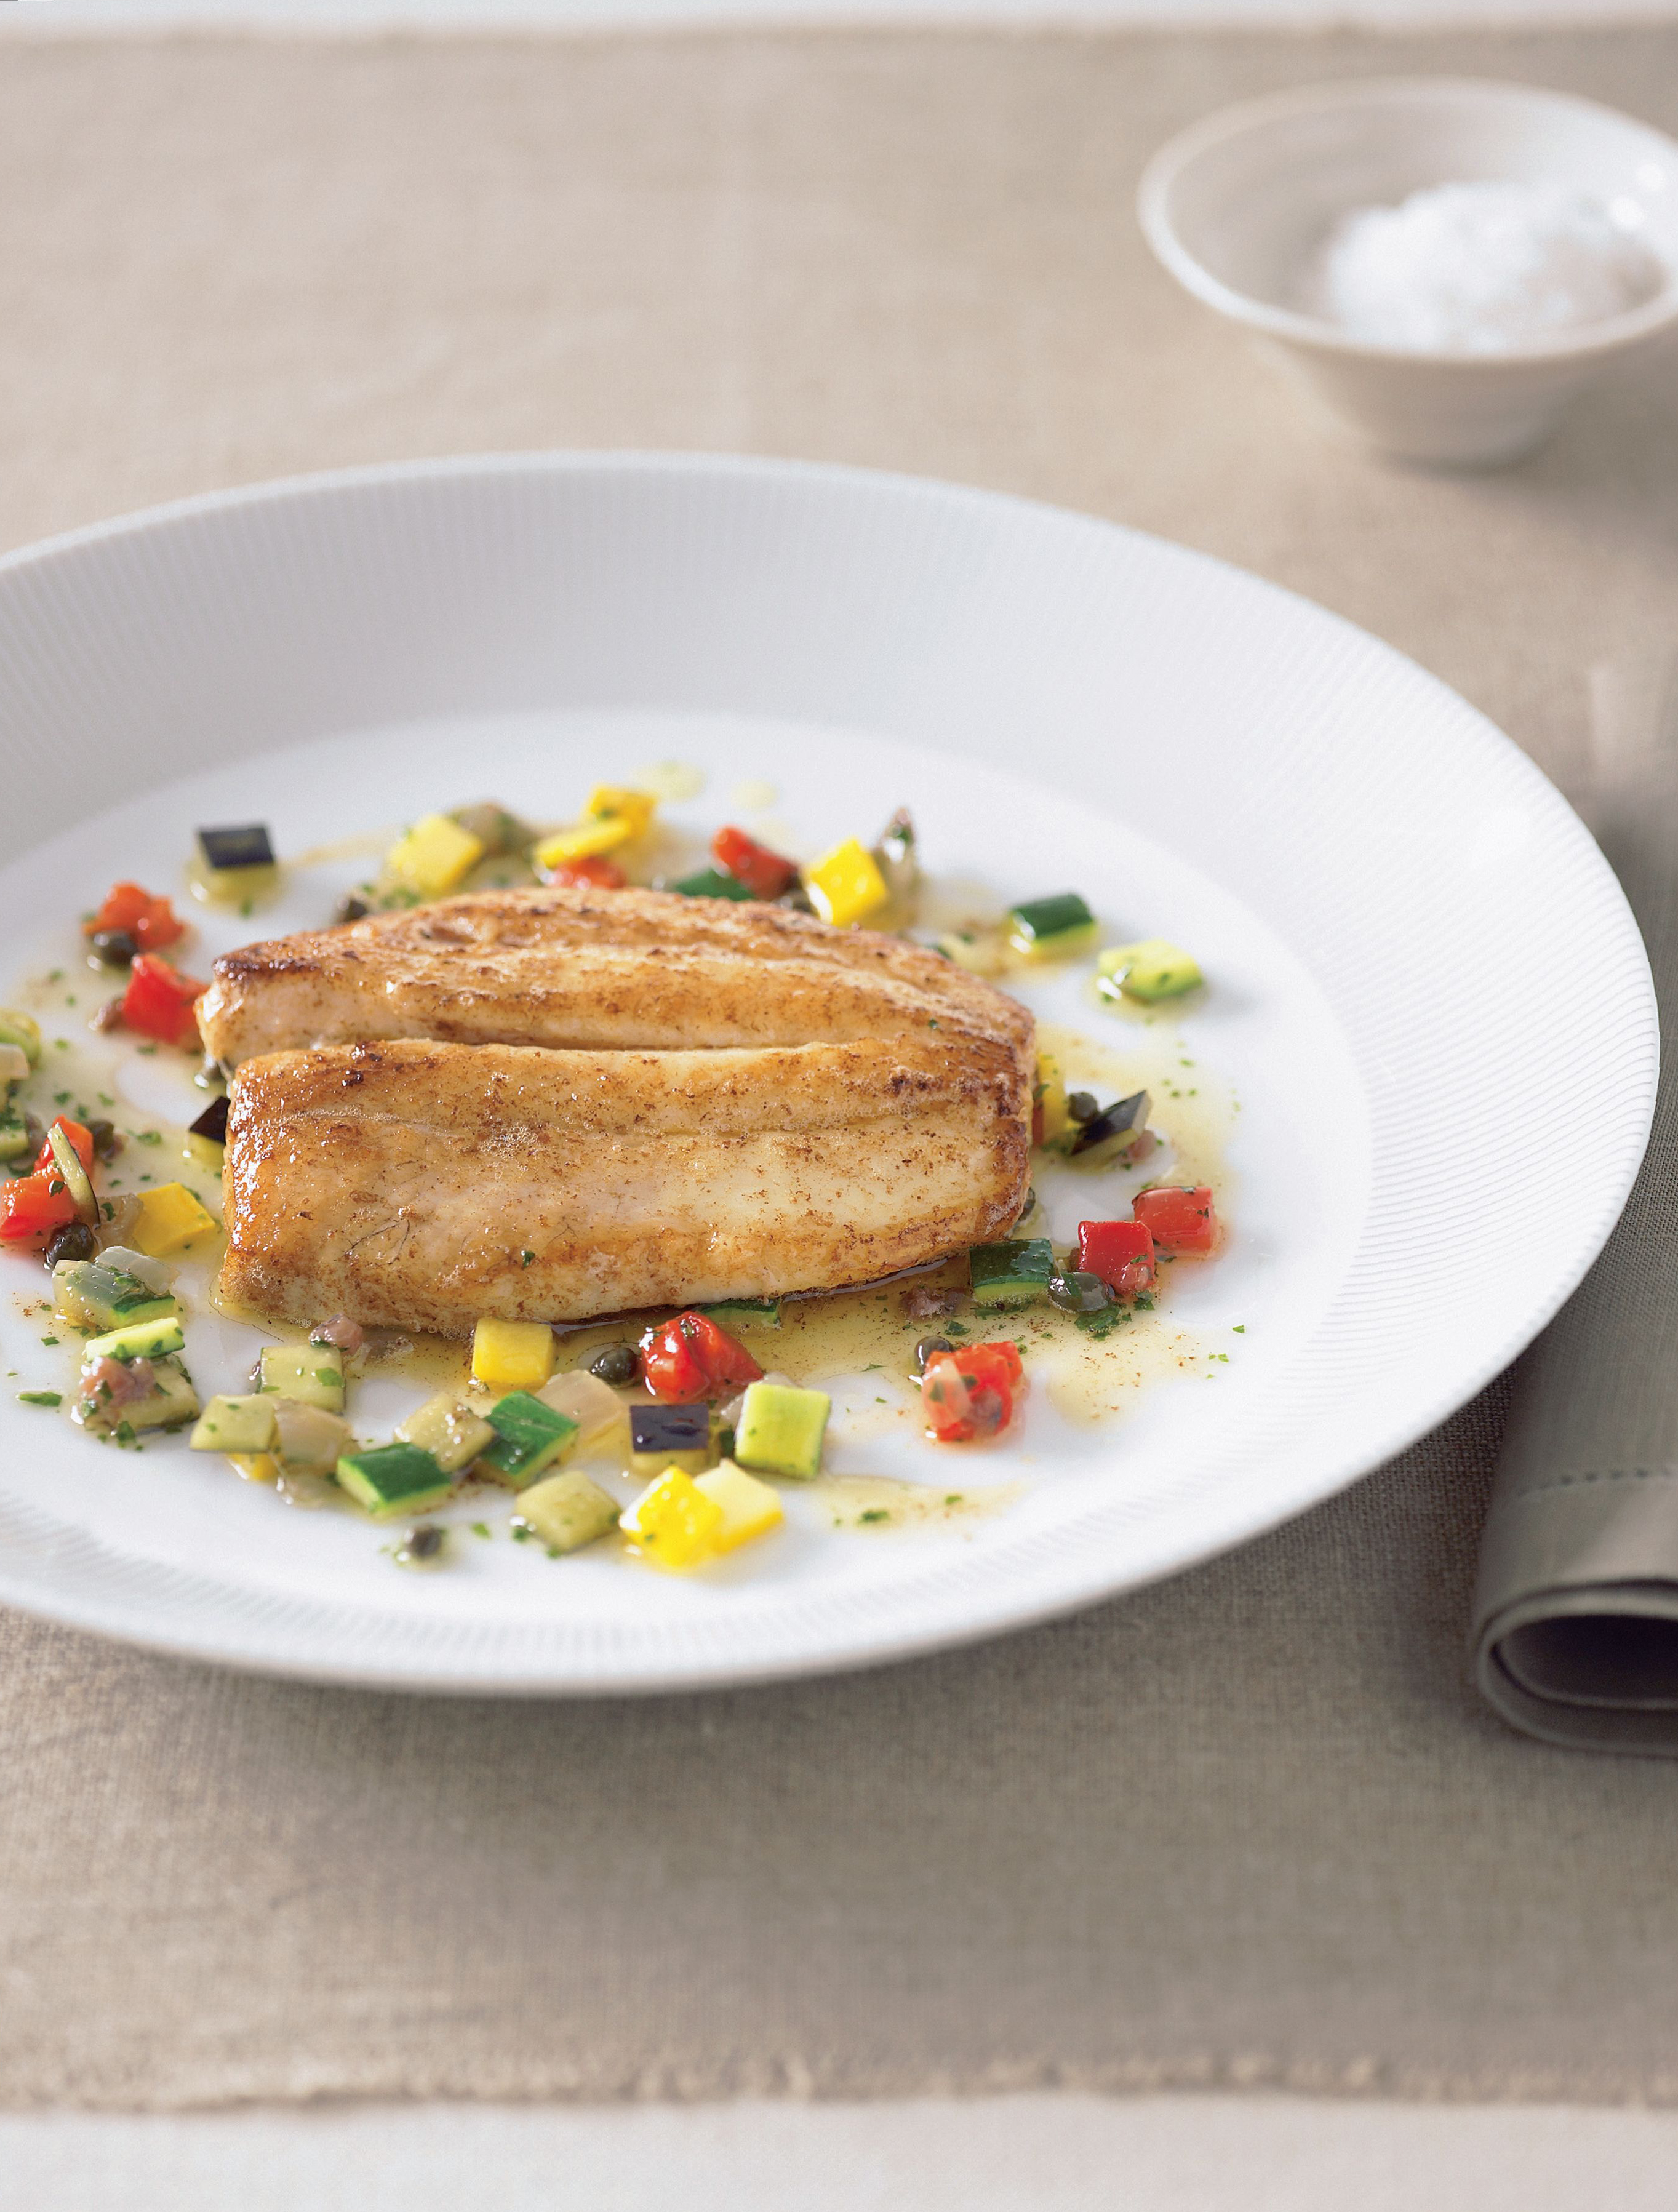 Pan-fried John Dory